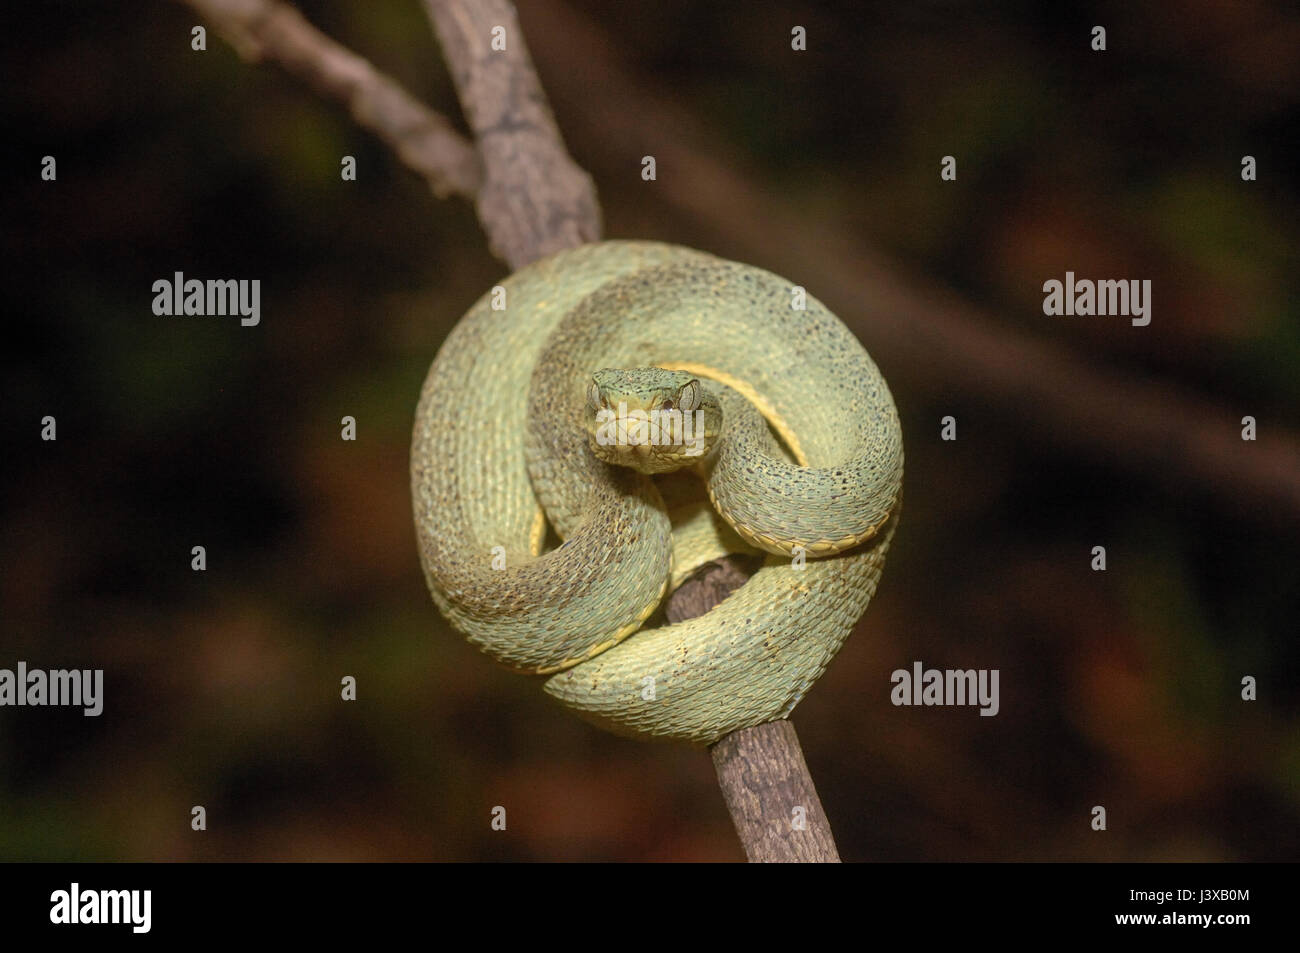 Amazonian palm viper (Bothriopsis bilineata) at rest on a branch during the day - Stock Image